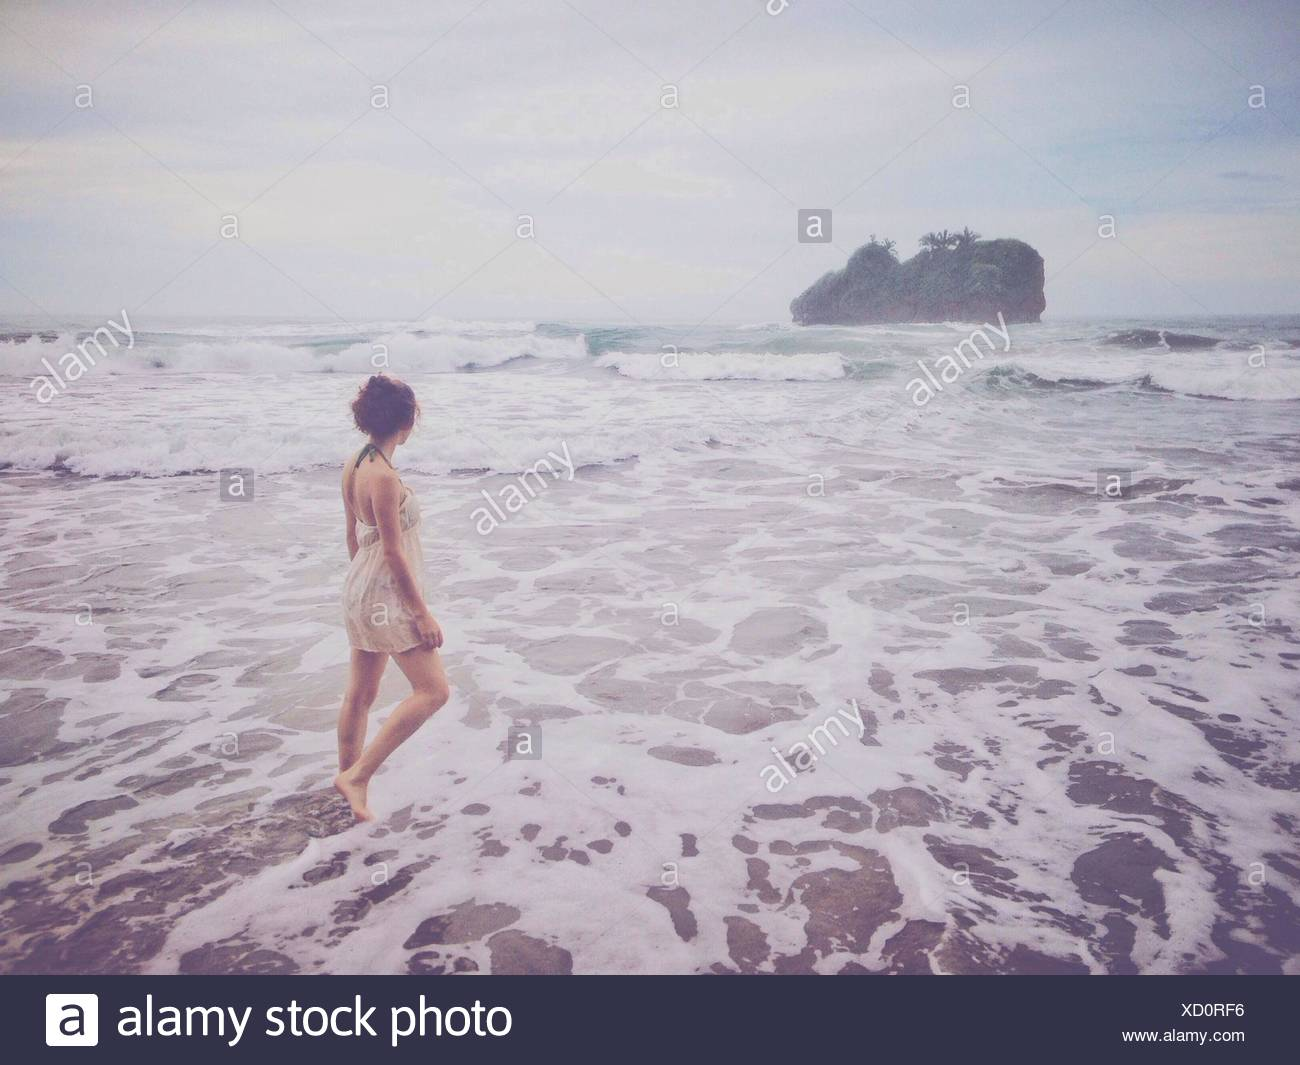 Rear View Of Young Woman Walking In Water At Beach - Stock Image